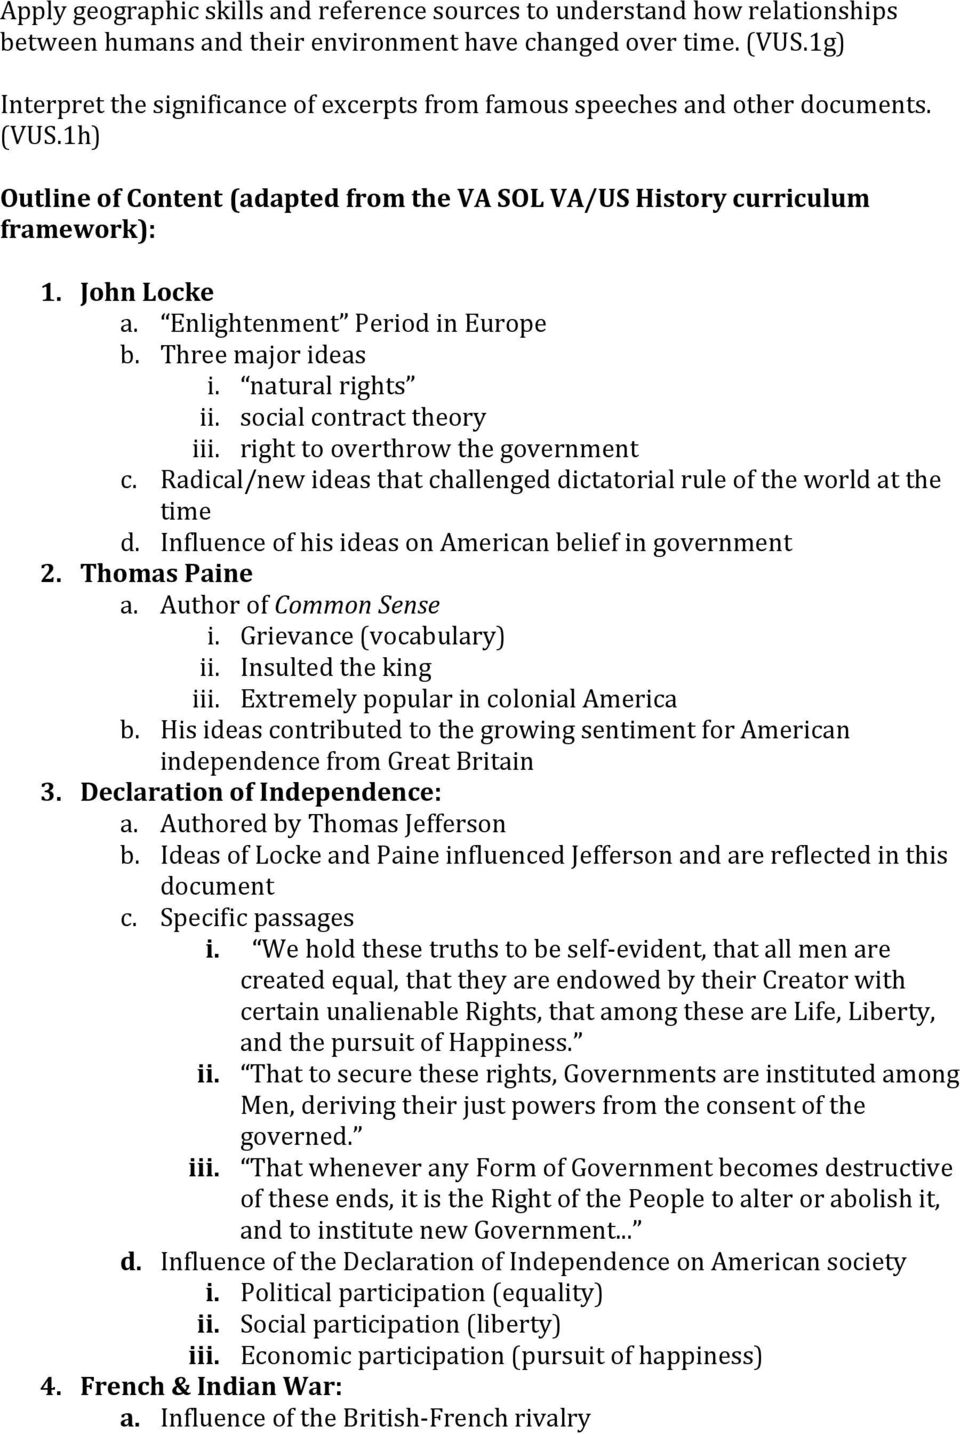 Unit plan the american revolution pdf three major ideas i natural rights ii social fandeluxe Gallery